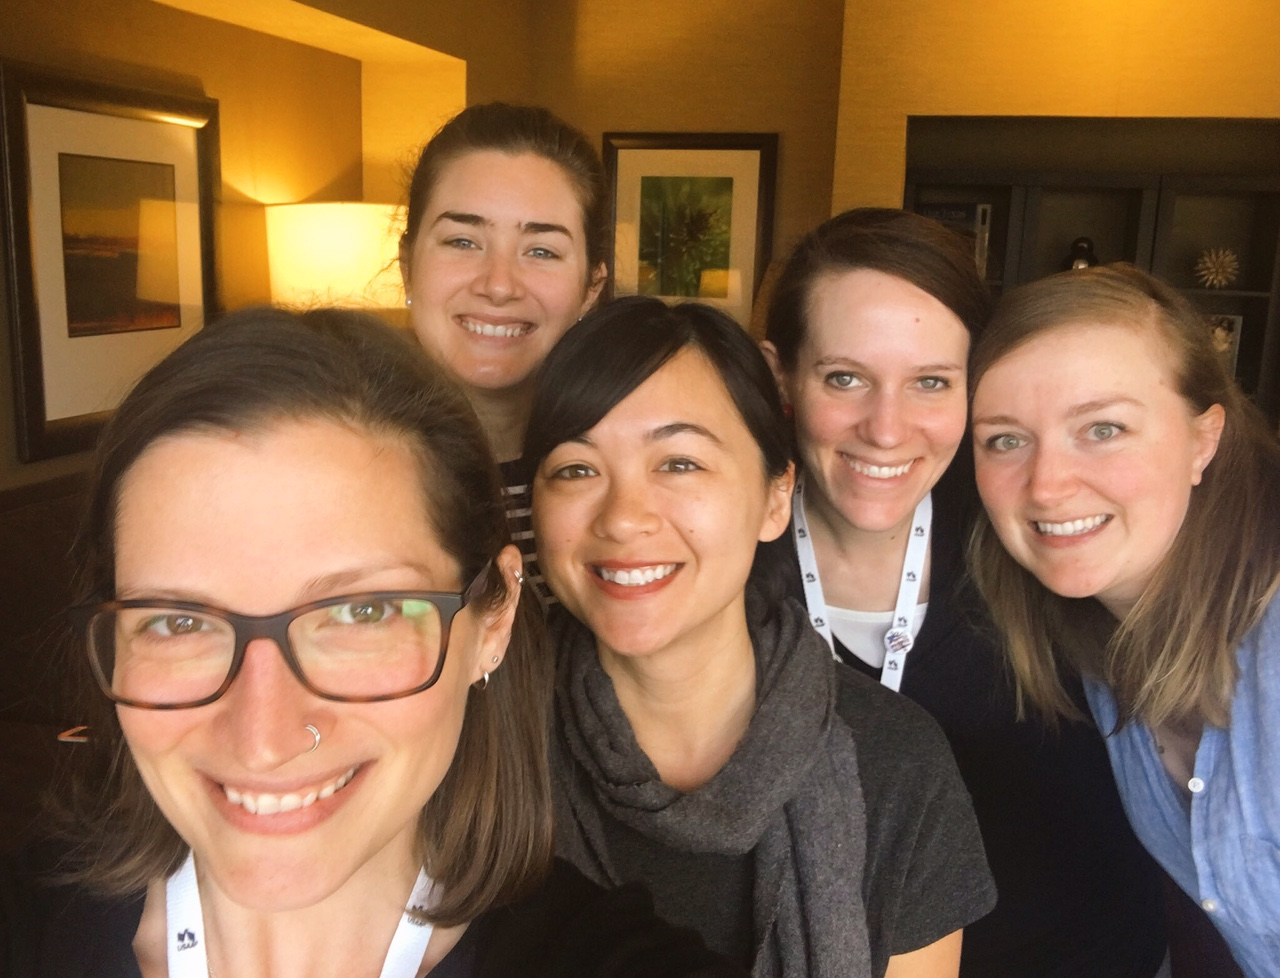 Kristin Wong, Erin Lowry, Liz Thames, Cait Flanders and Tanja Hester at FinCon17